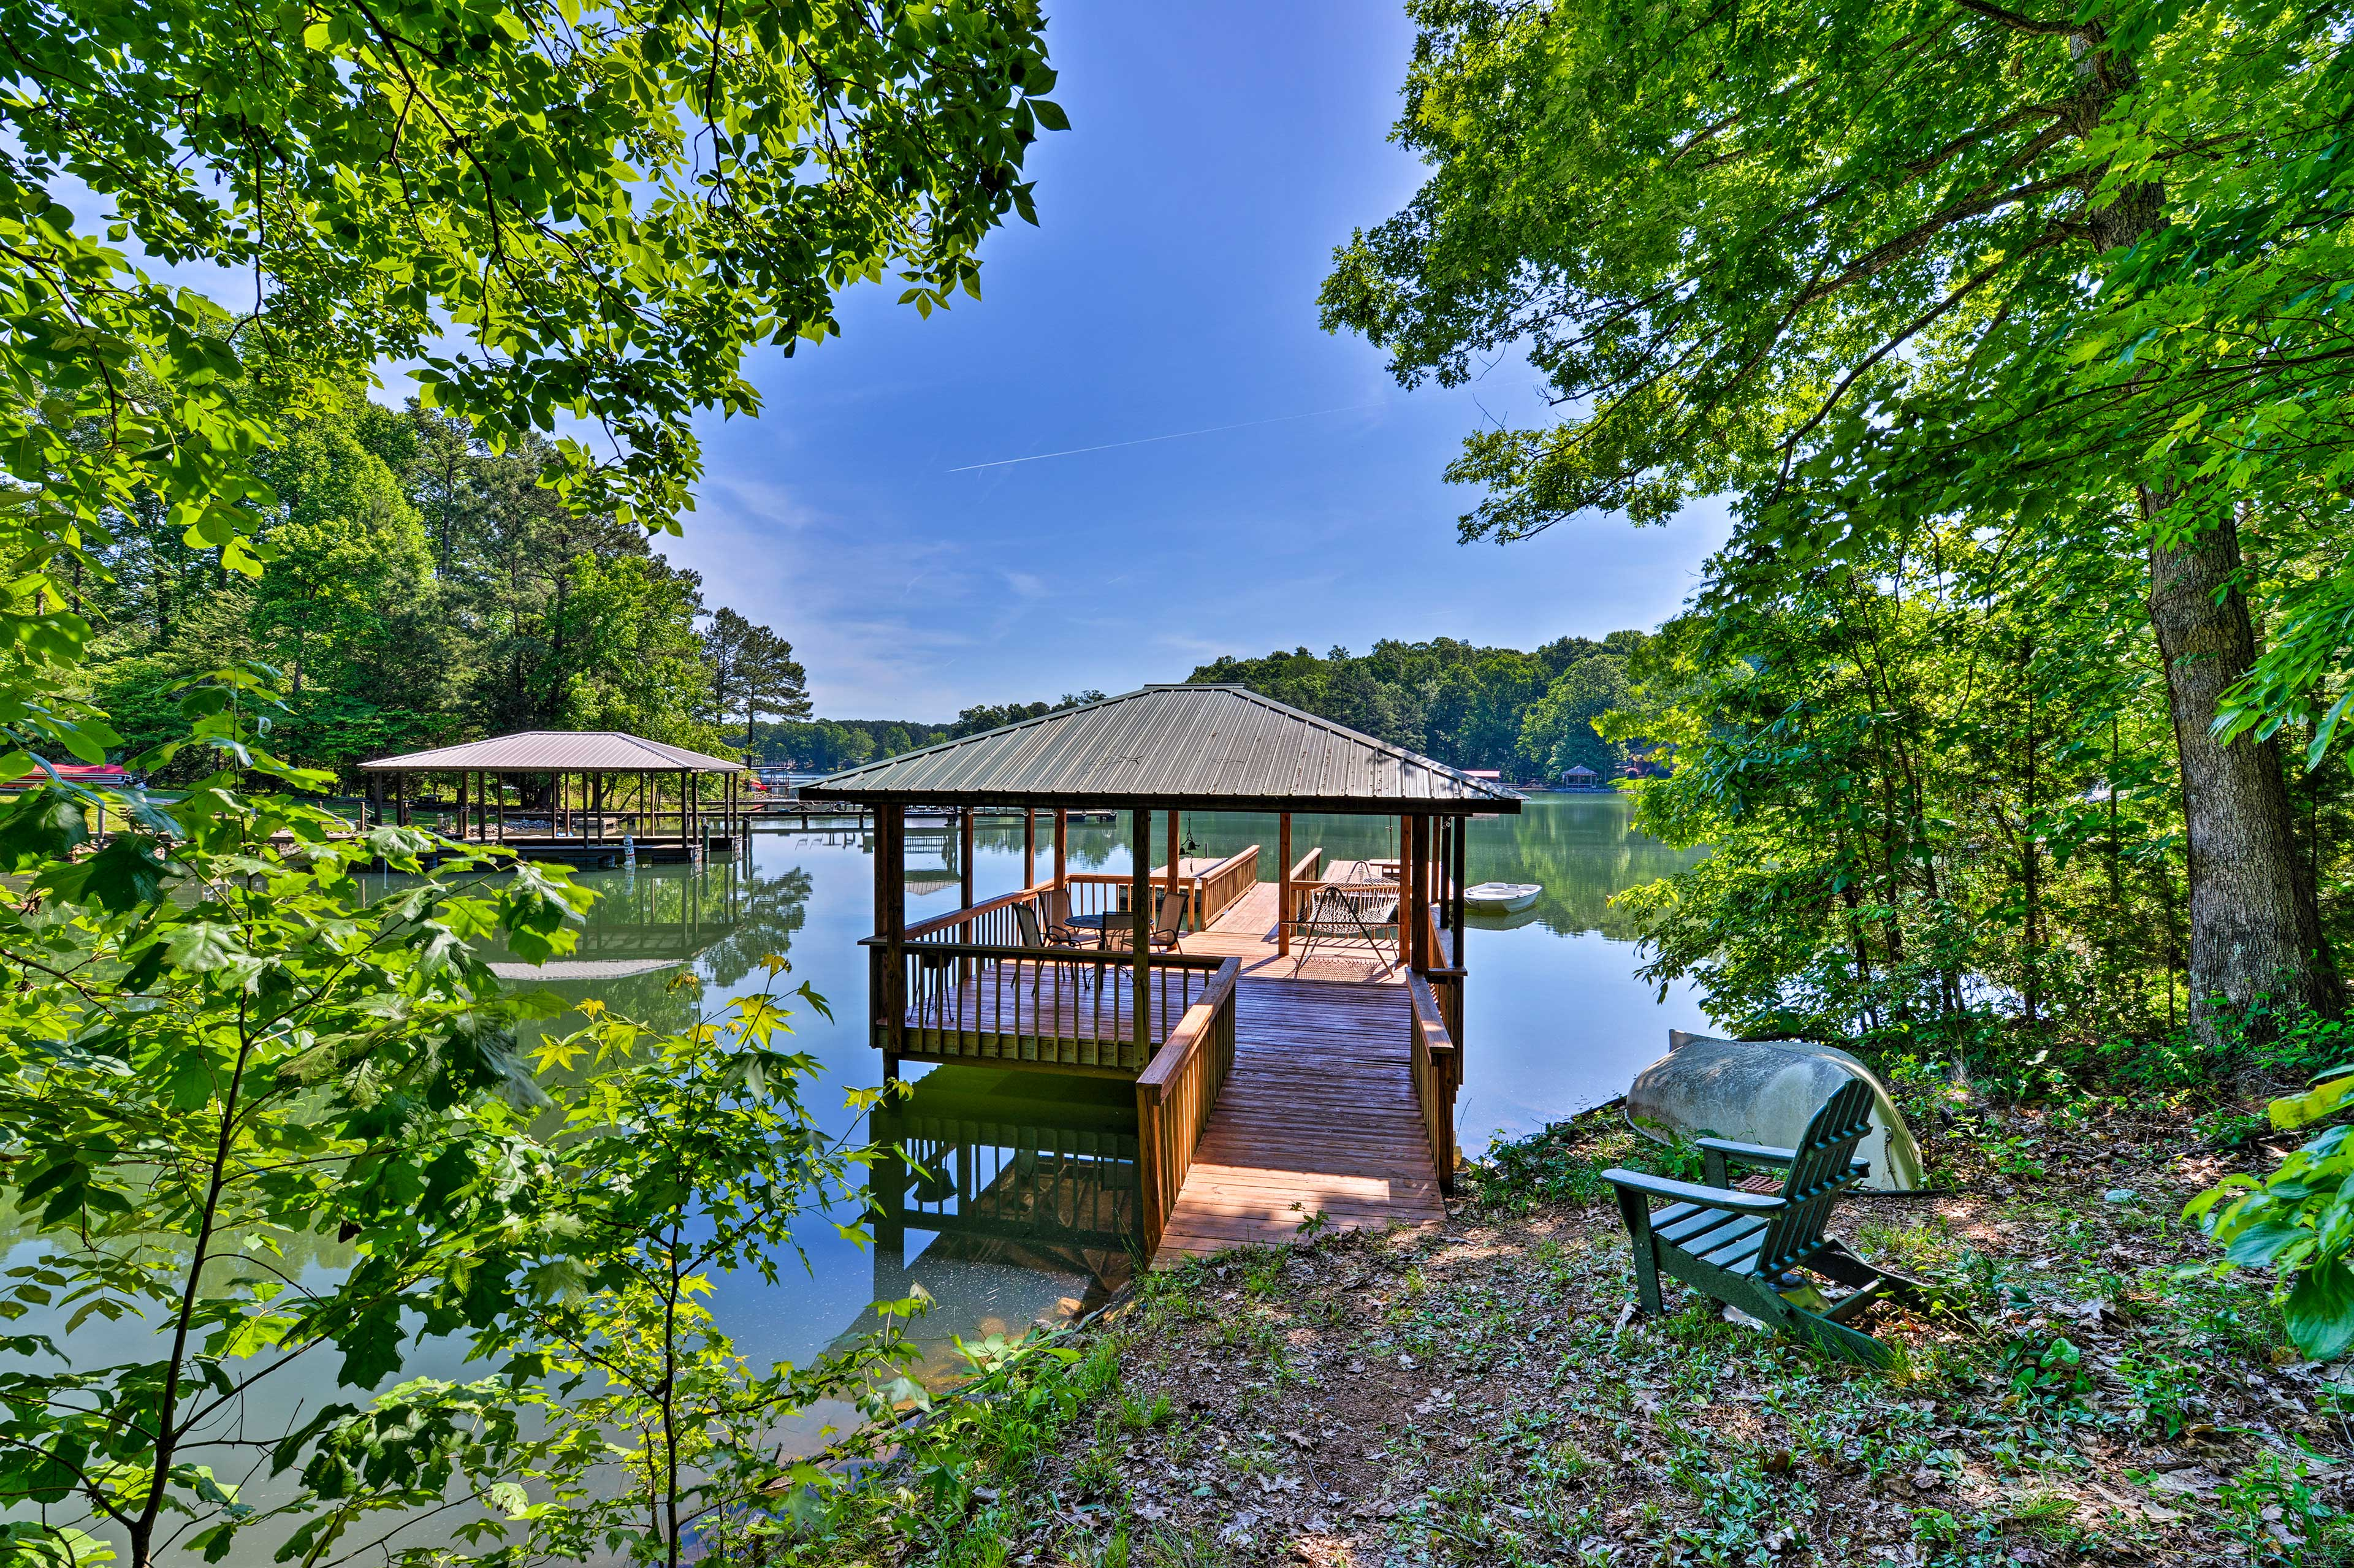 Book your Mooresville getaway to this tranquil 3-bedroom, 1-bath vacation rental